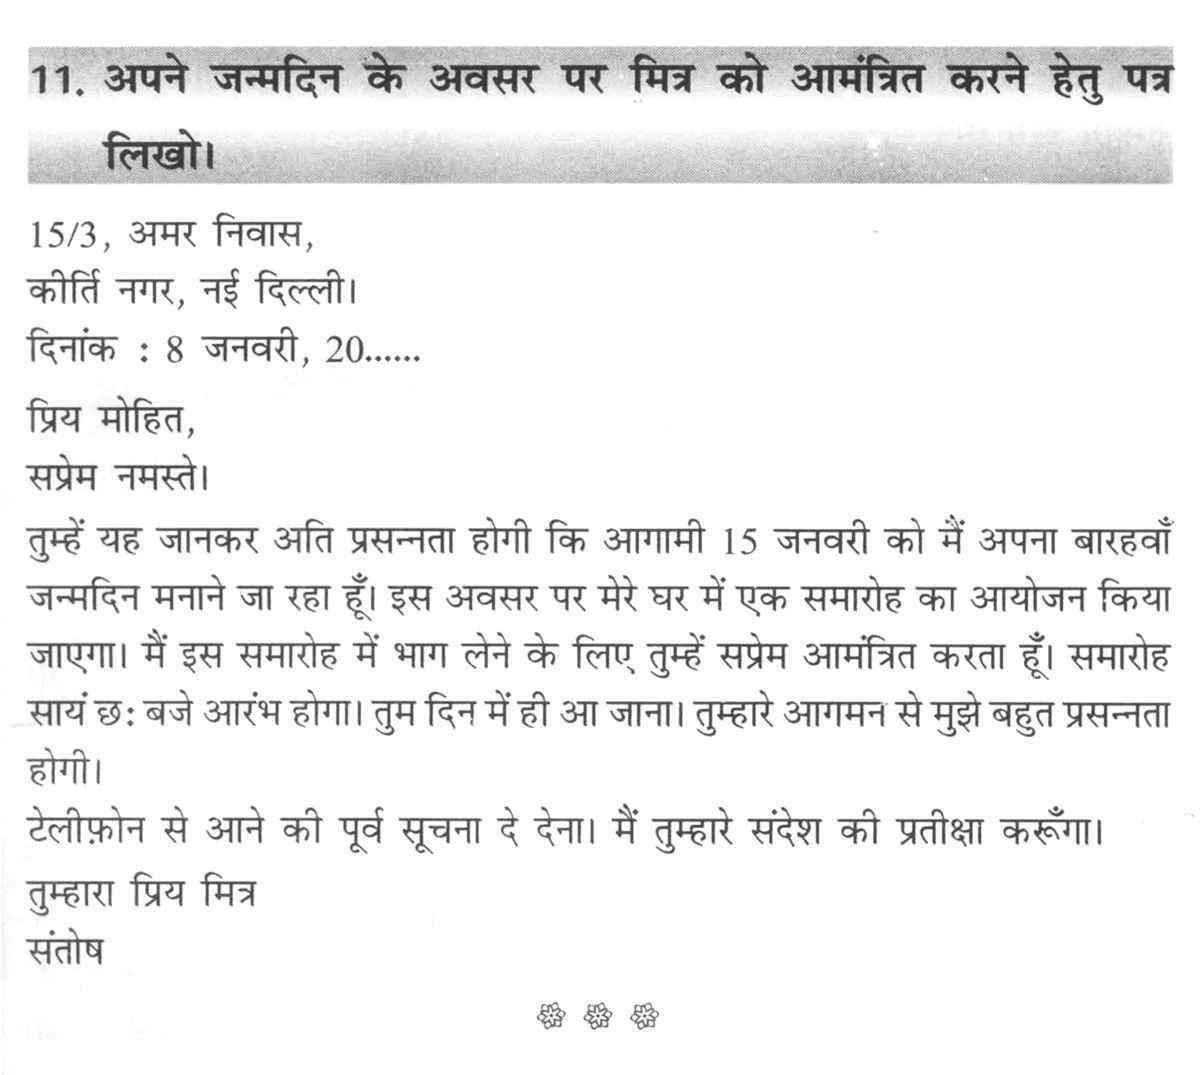 Here is your Letter Inviting Friend on the Occasion of his Own